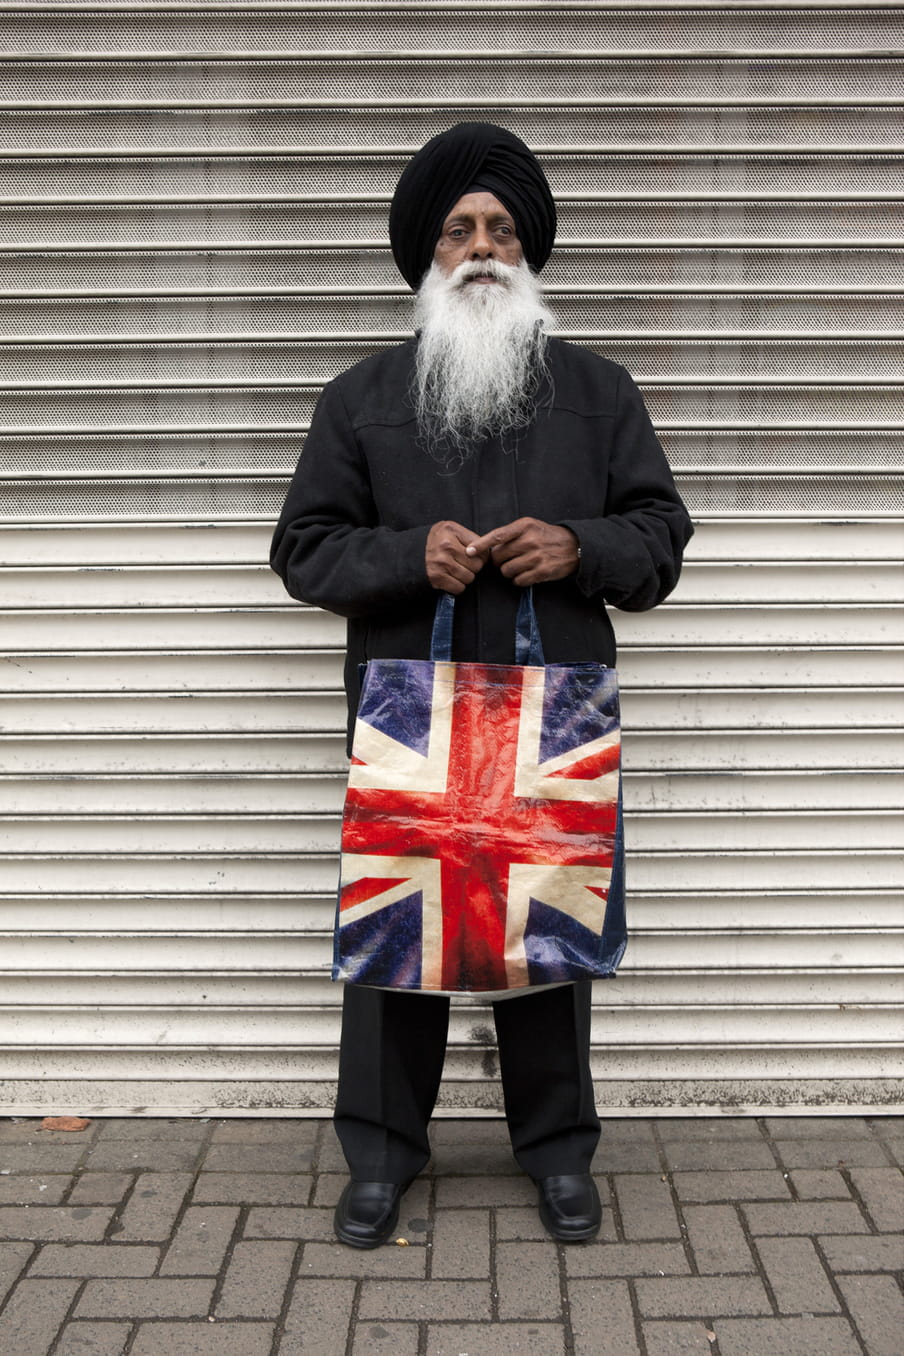 Photo of a Sikh man standing with a bag in his hands, showing the UK flag